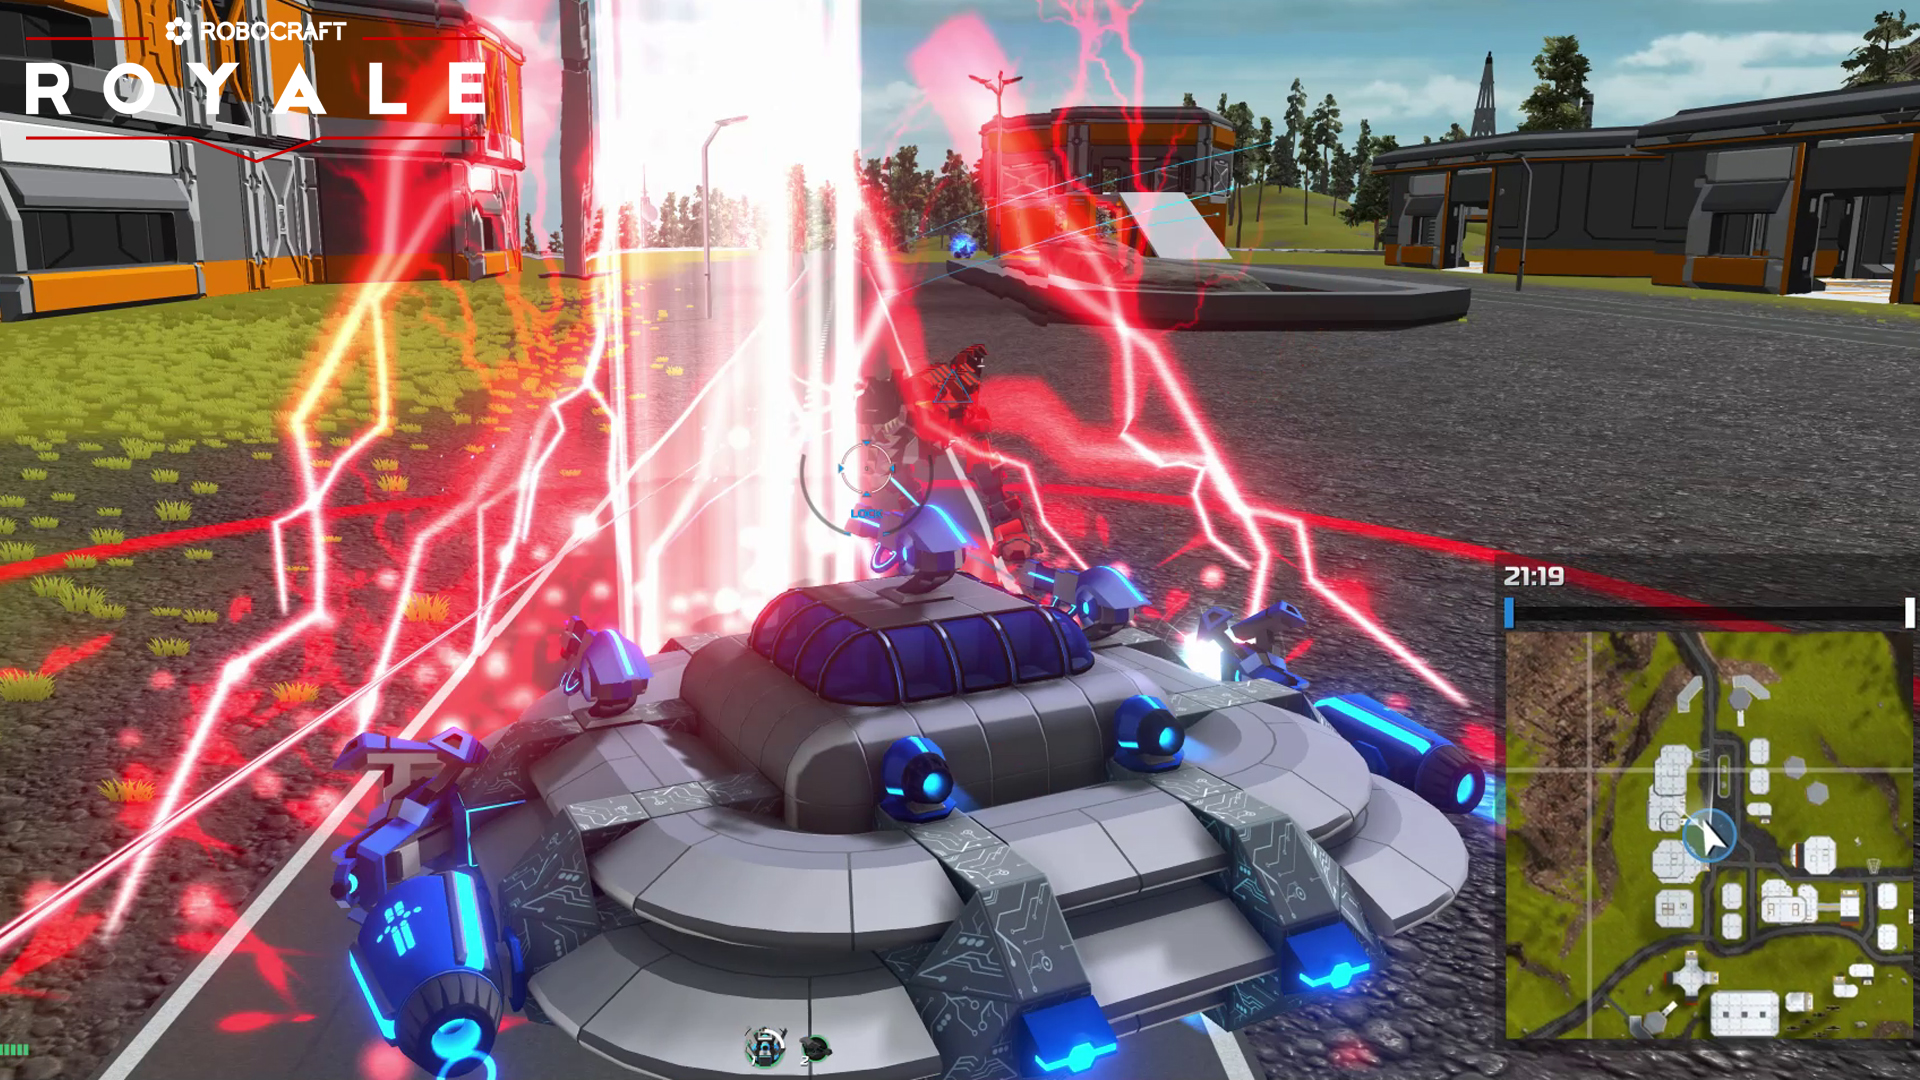 Robocraft Royale Out Now On Steam Early Access